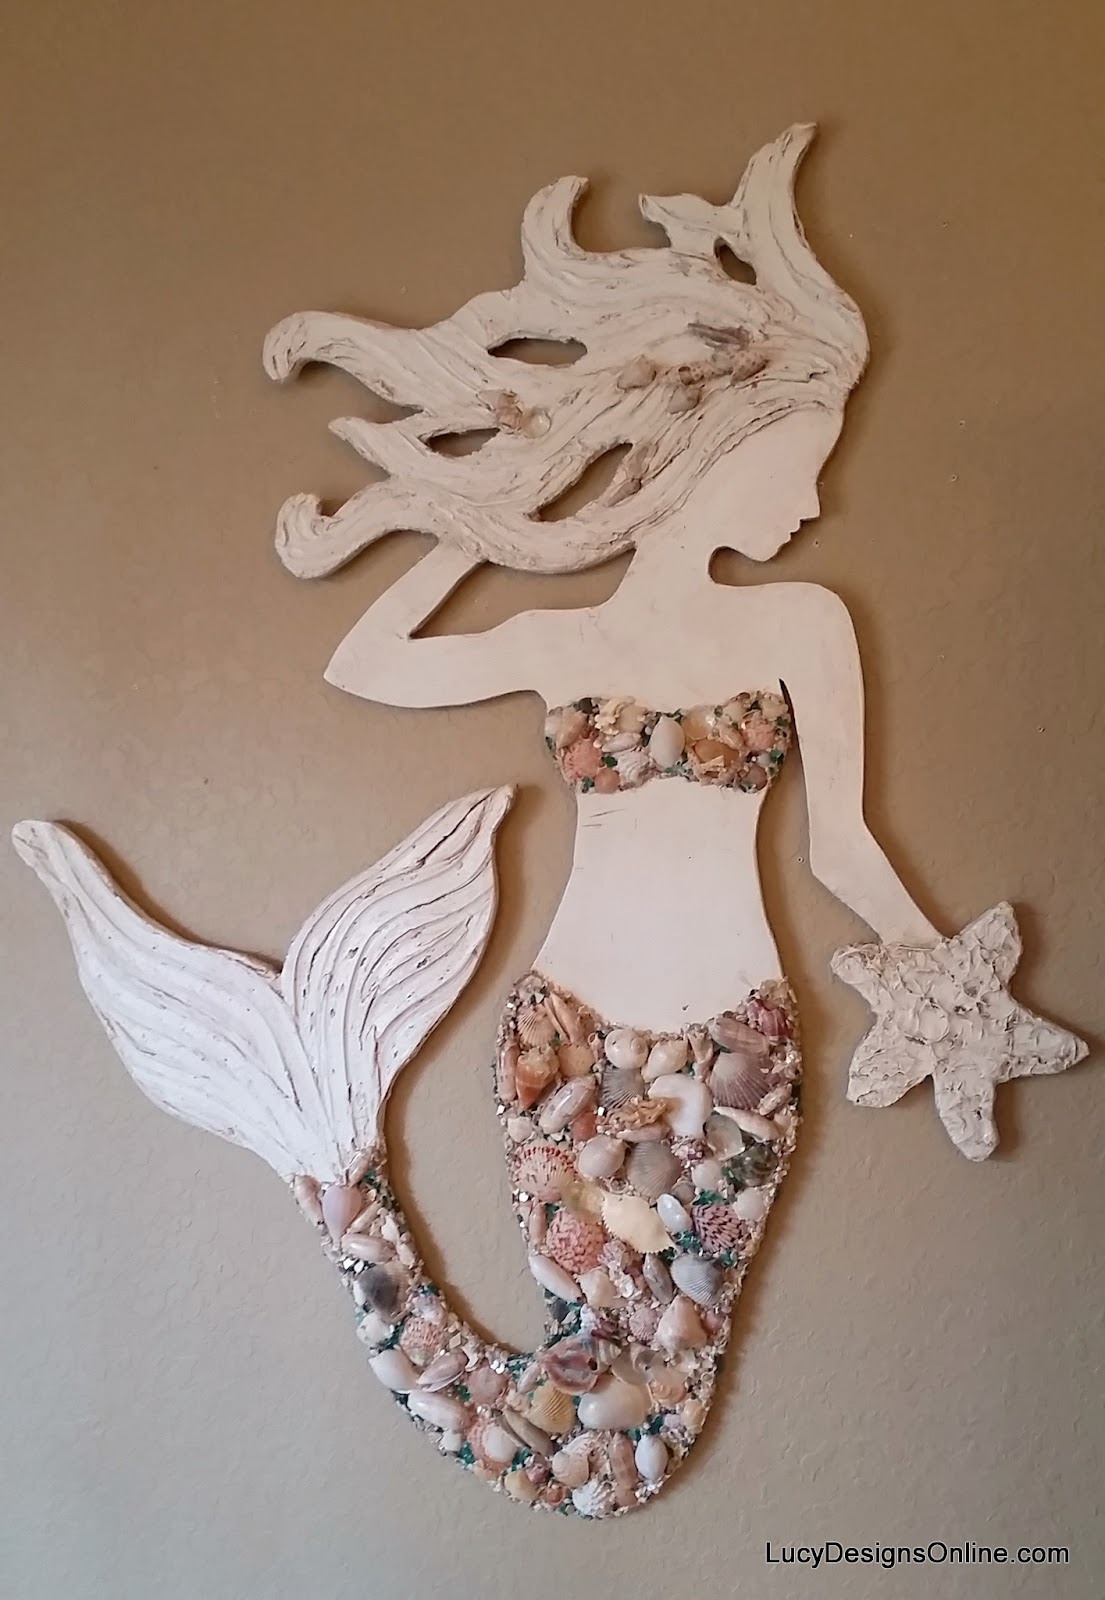 mermaid wall art with shells and glass